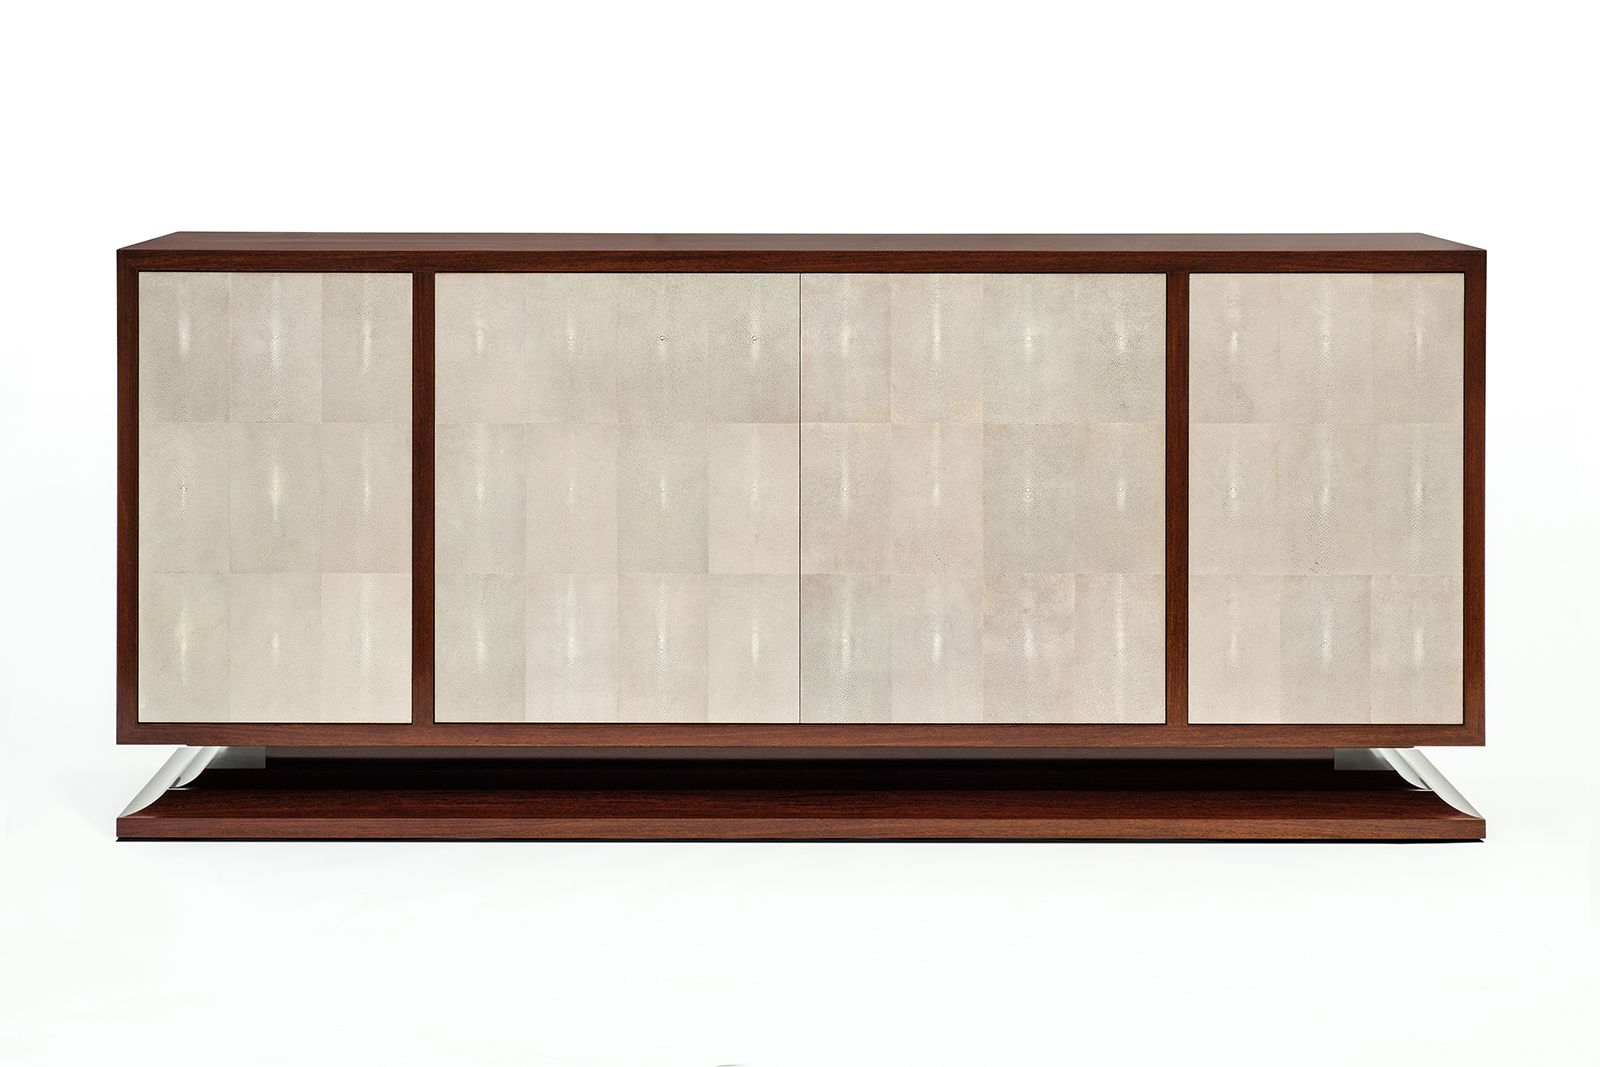 This New Sideboard Perfectly Represents The Impeccable Within Solana Sideboards (View 27 of 30)